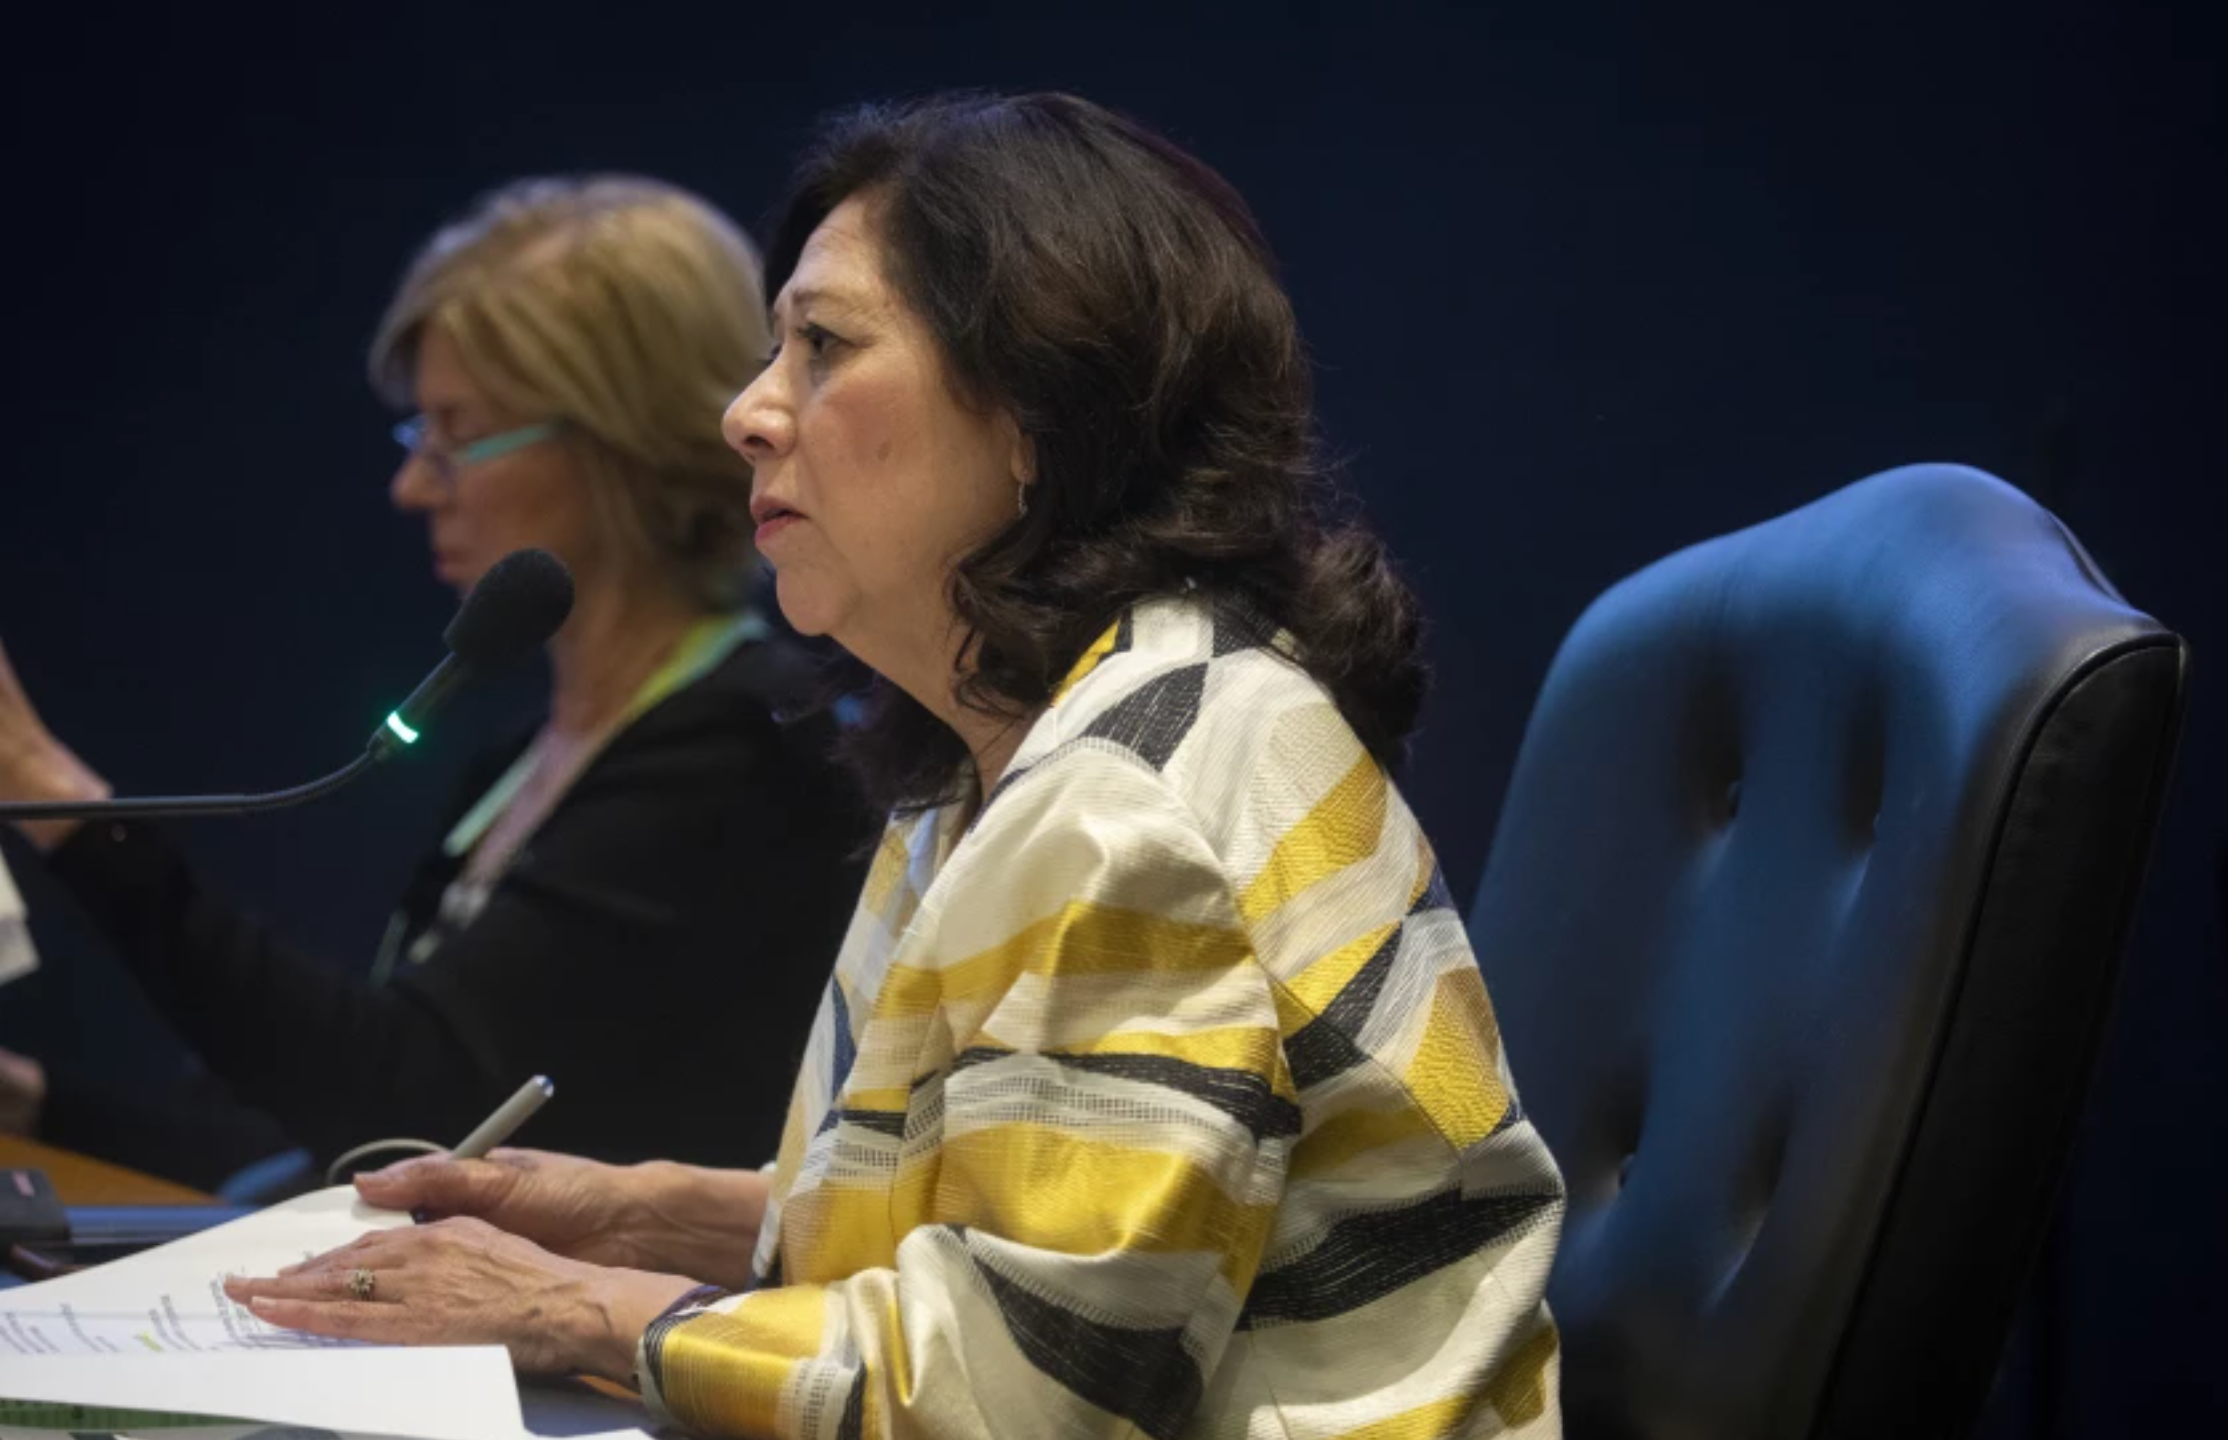 Los Angeles Board of Supervisor Hilda Solis wrote a motion that allows the county to begin hiring immigrants without citizenship as county department heads along with other positions when state and federal law doesn't mandate citizenship.(Francine Orr/Los Angeles Times)